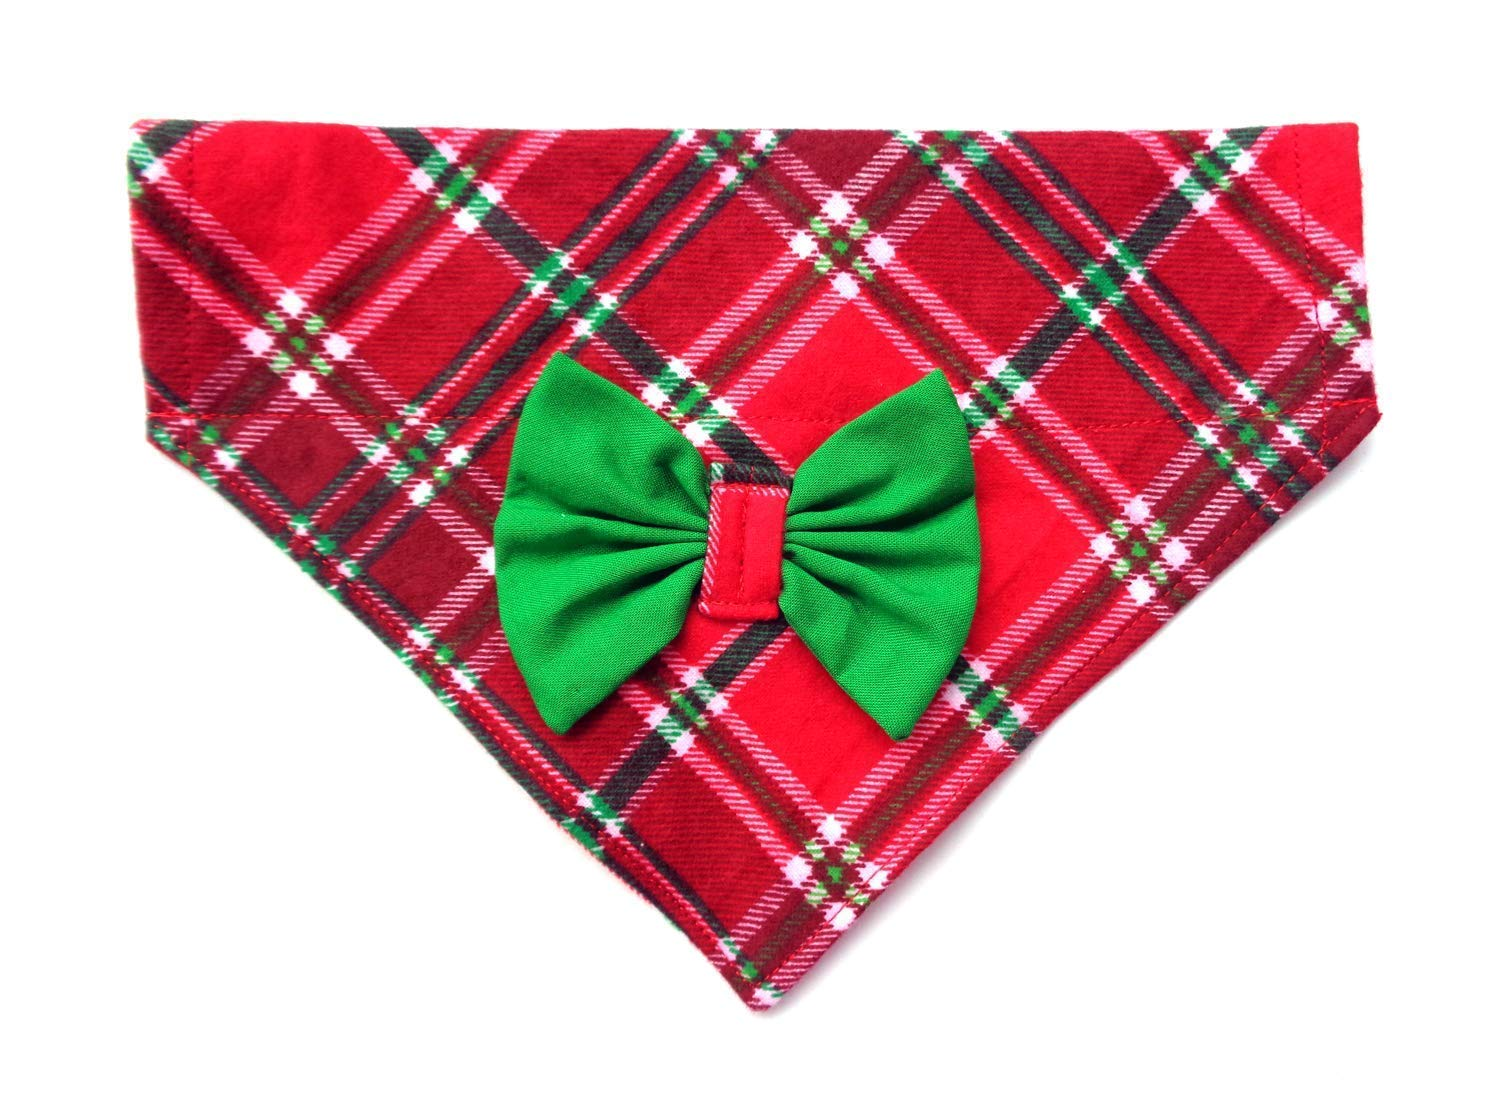 2 in 1 Flannel Scottish Plaid Christmas St Patrick's Day Dog Bandanna Bow, Over the Collar No-Tie Slip Through, Festive Petwear Handmade Holiday Accessories